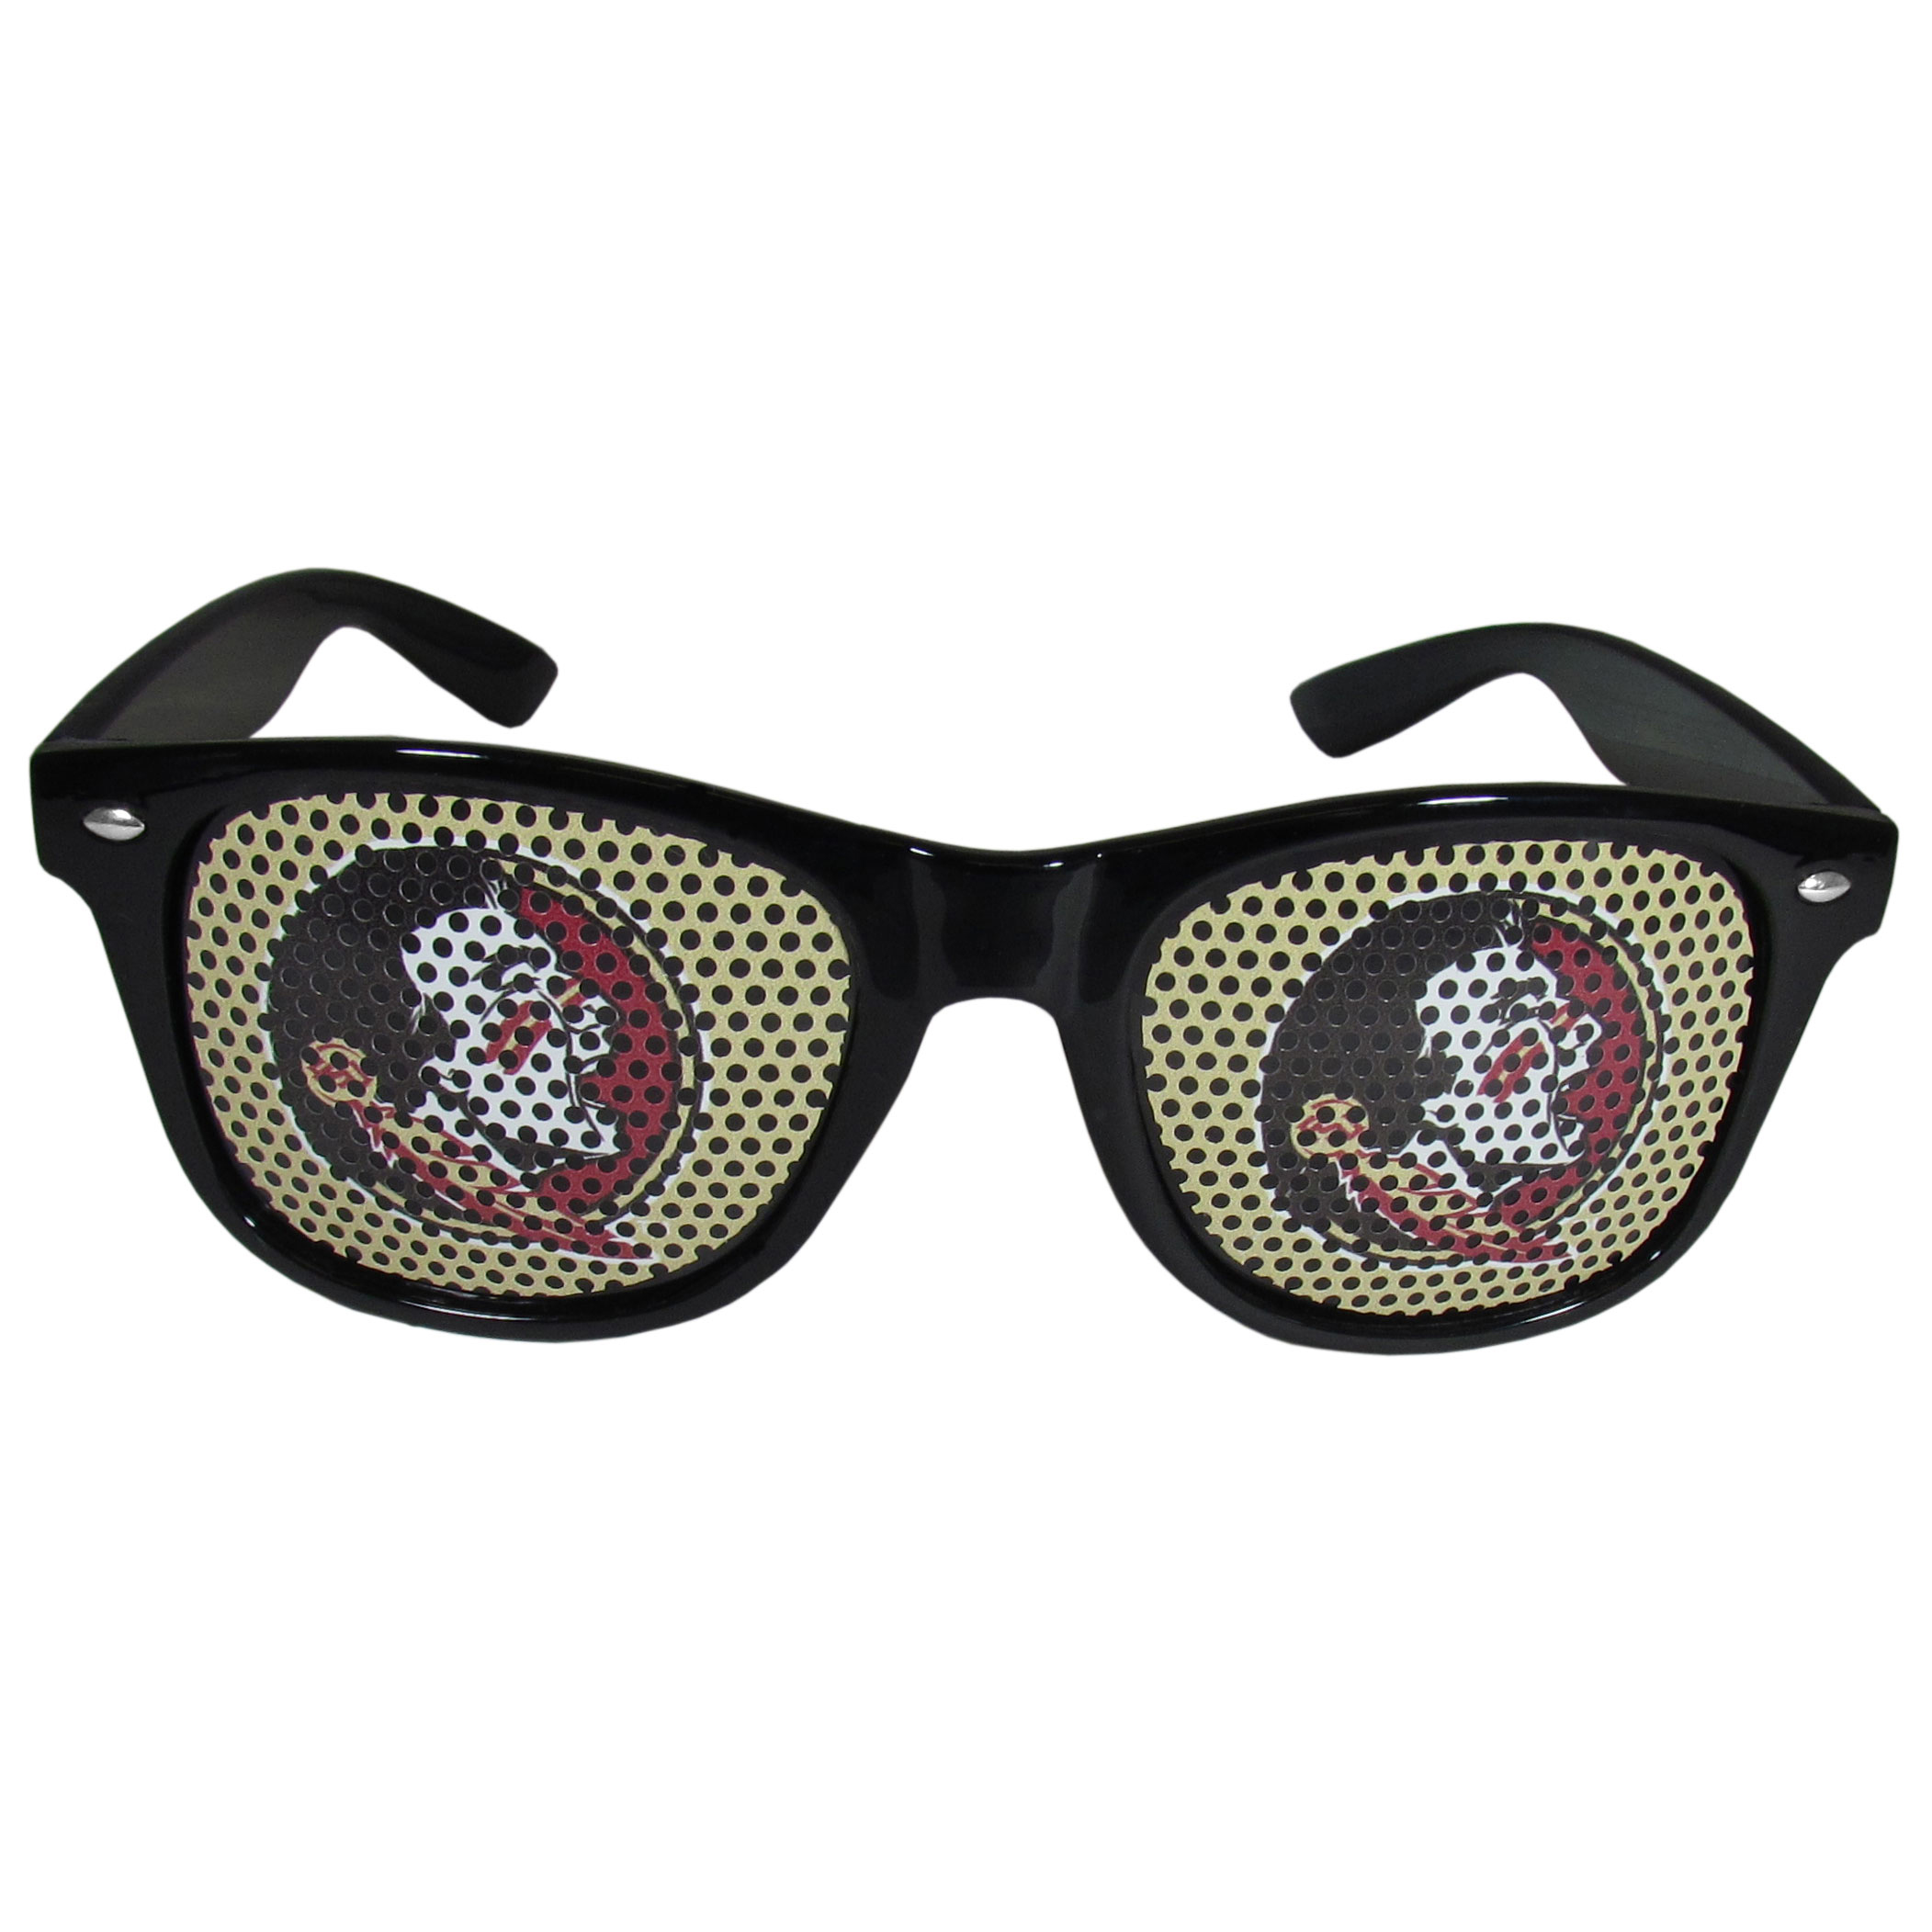 Florida St. Seminoles Game Day Shades - Our officially licensed game day shades are the perfect accessory for the devoted Florida St. Seminoles fan! The sunglasses have durable polycarbonate frames with flex hinges for comfort and damage resistance. The lenses feature brightly colored team clings that are perforated for visibility.